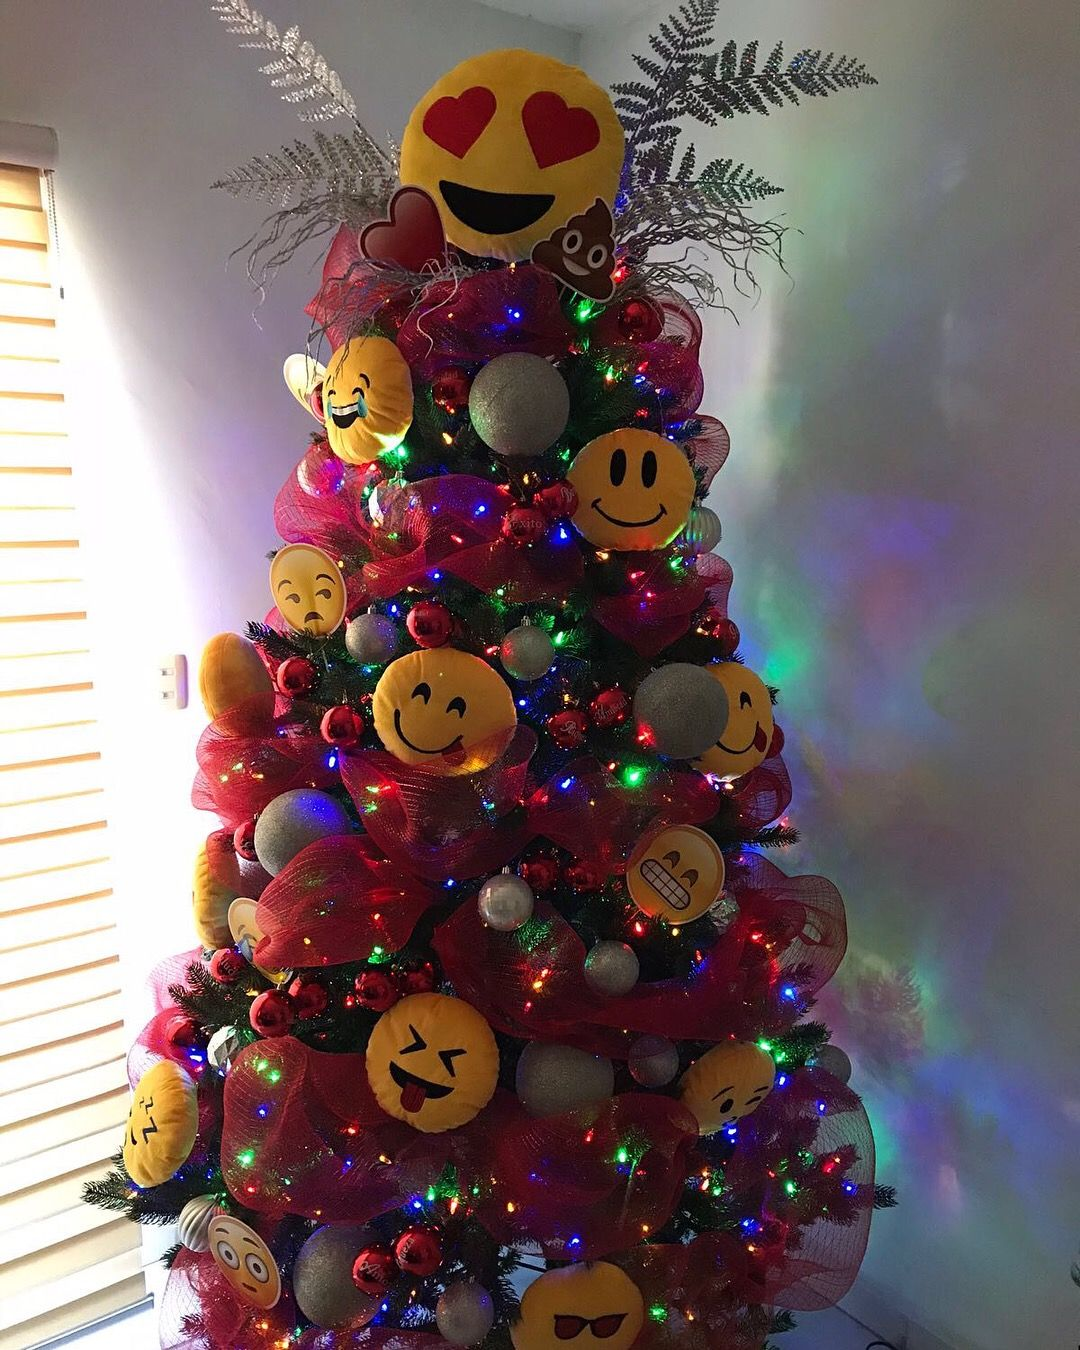 Pin By Tania Hdz De Quiroga On Emoji Christmas Tree Emoji Christmas Tree Emoji Christmas Tree Decorations